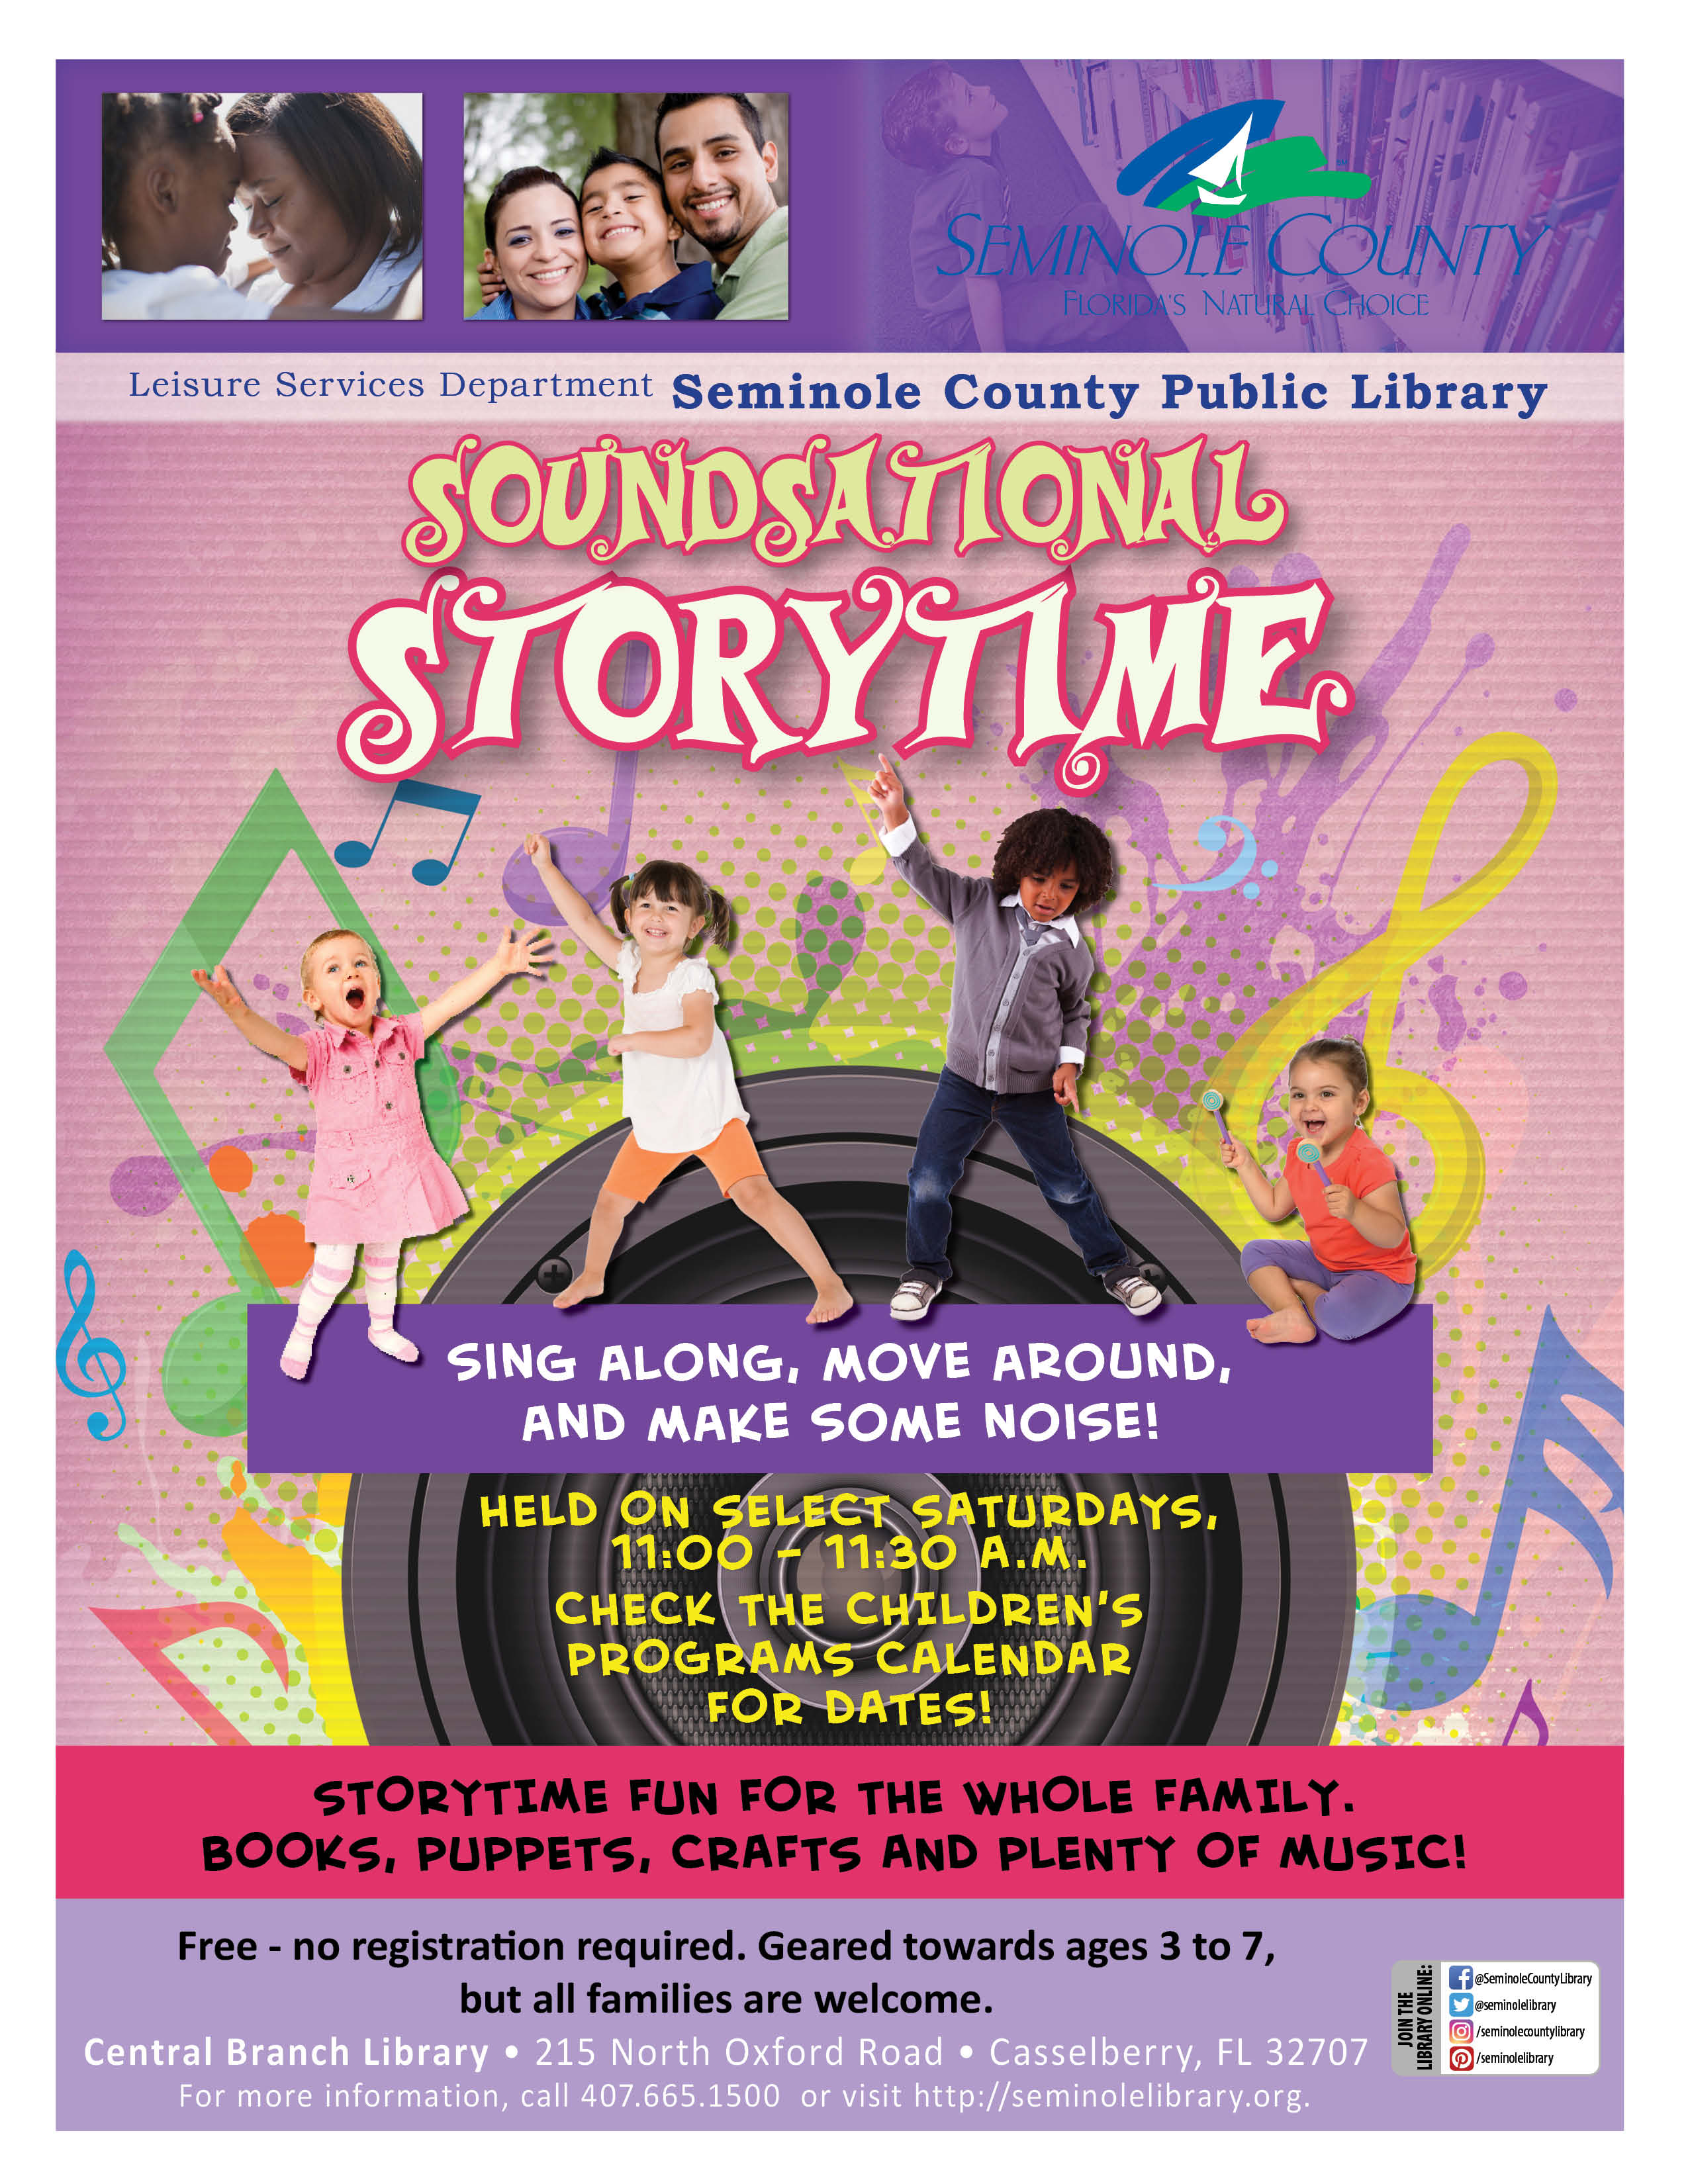 Soundsational Storytime Select Saturdays Central Branch Library